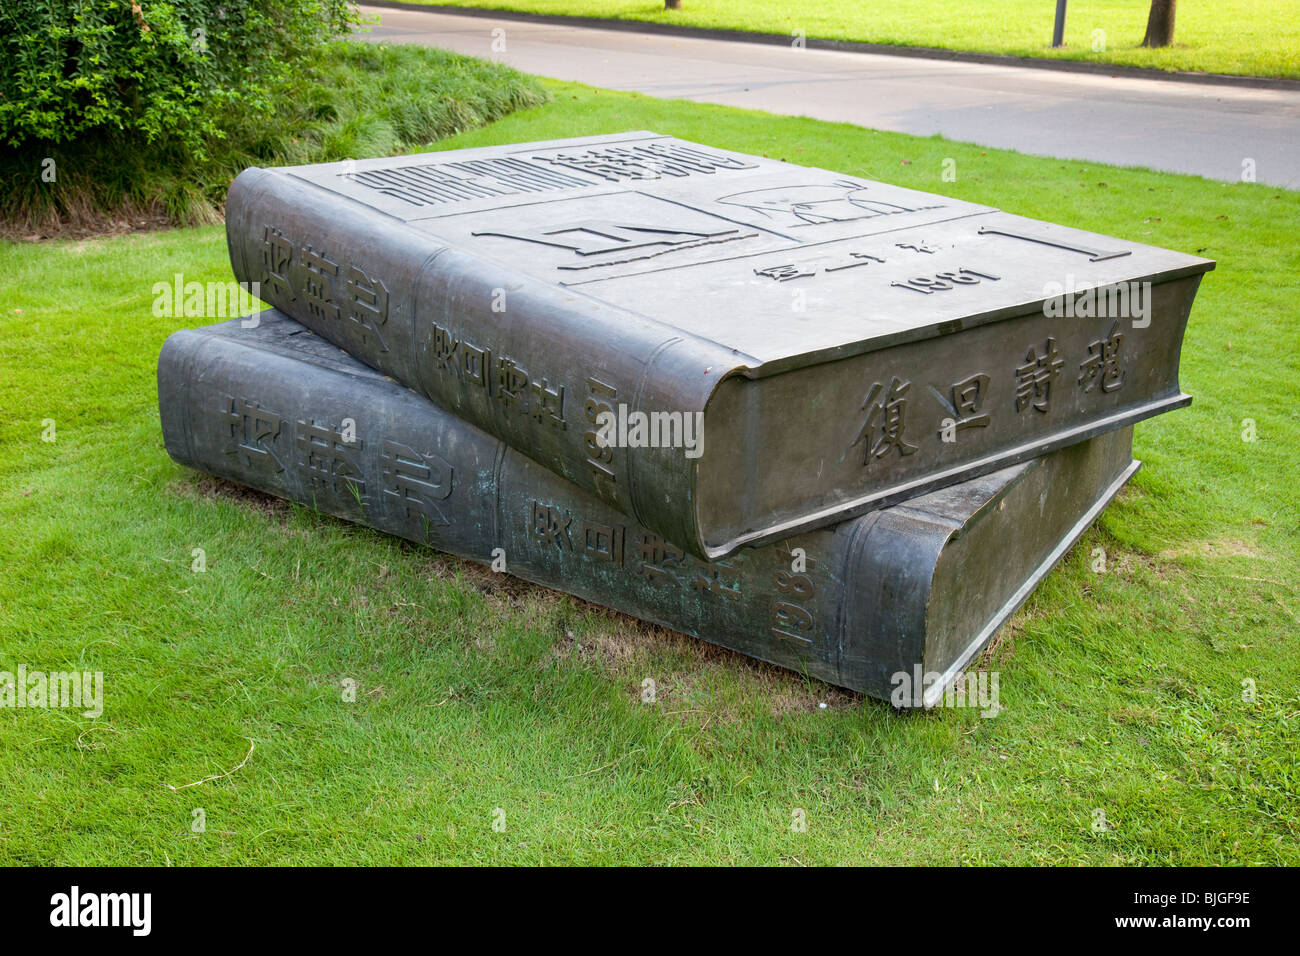 Sculpture of two books on campus of Fudan University, Shanghai, China Stock Photo